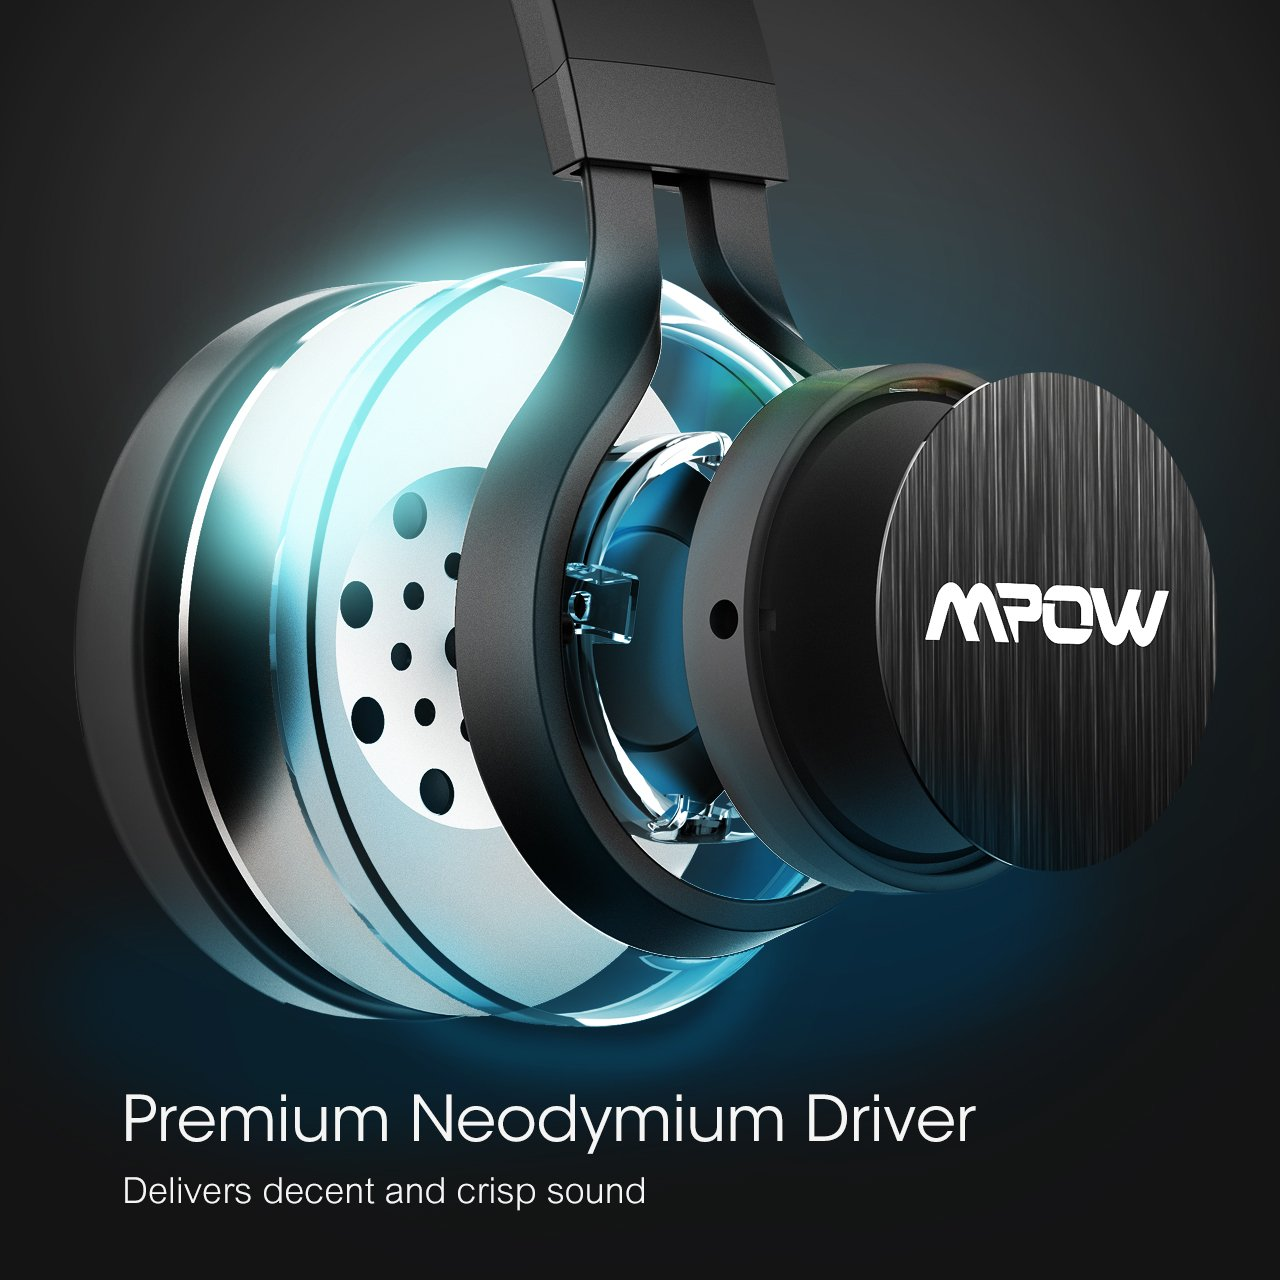 Mpow Thor Bluetooth Headphones Over Ear Wireless Headset Portable with Mic Cord Mode 120 Songs Playing Time for TV PC Cell Phone